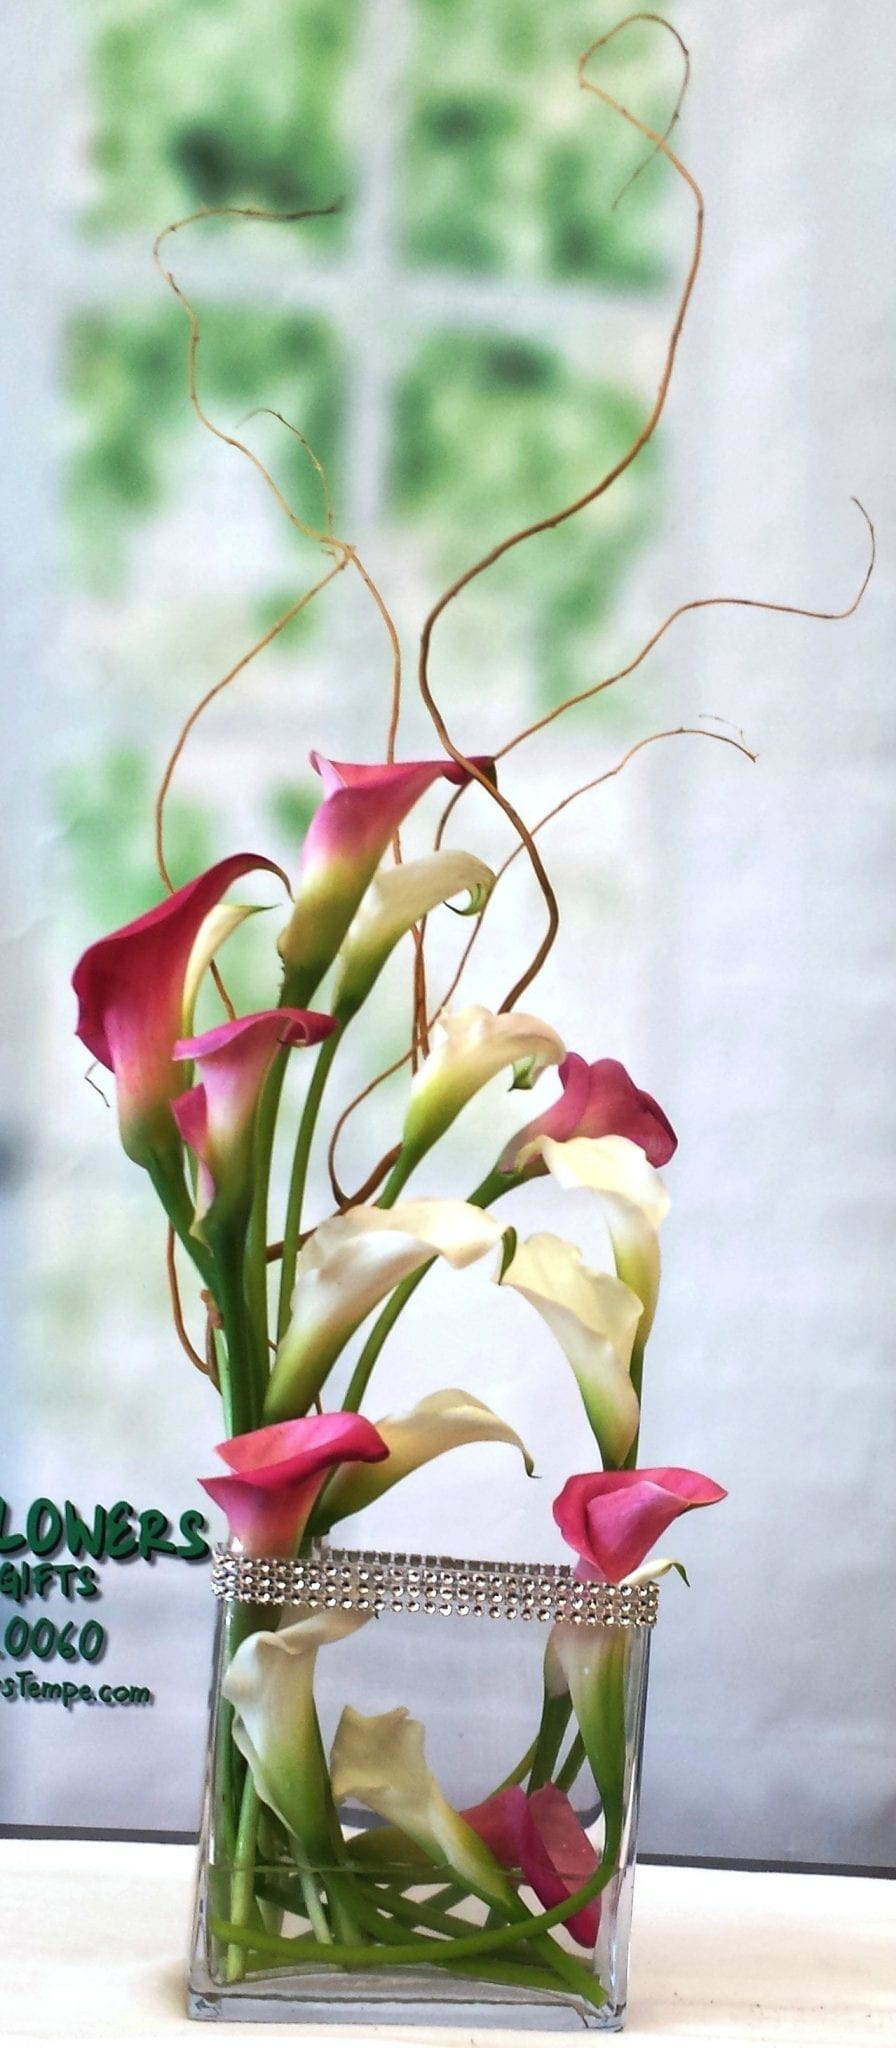 NEXT DAY DELIVERY - Fiesta Calla Lily Garden